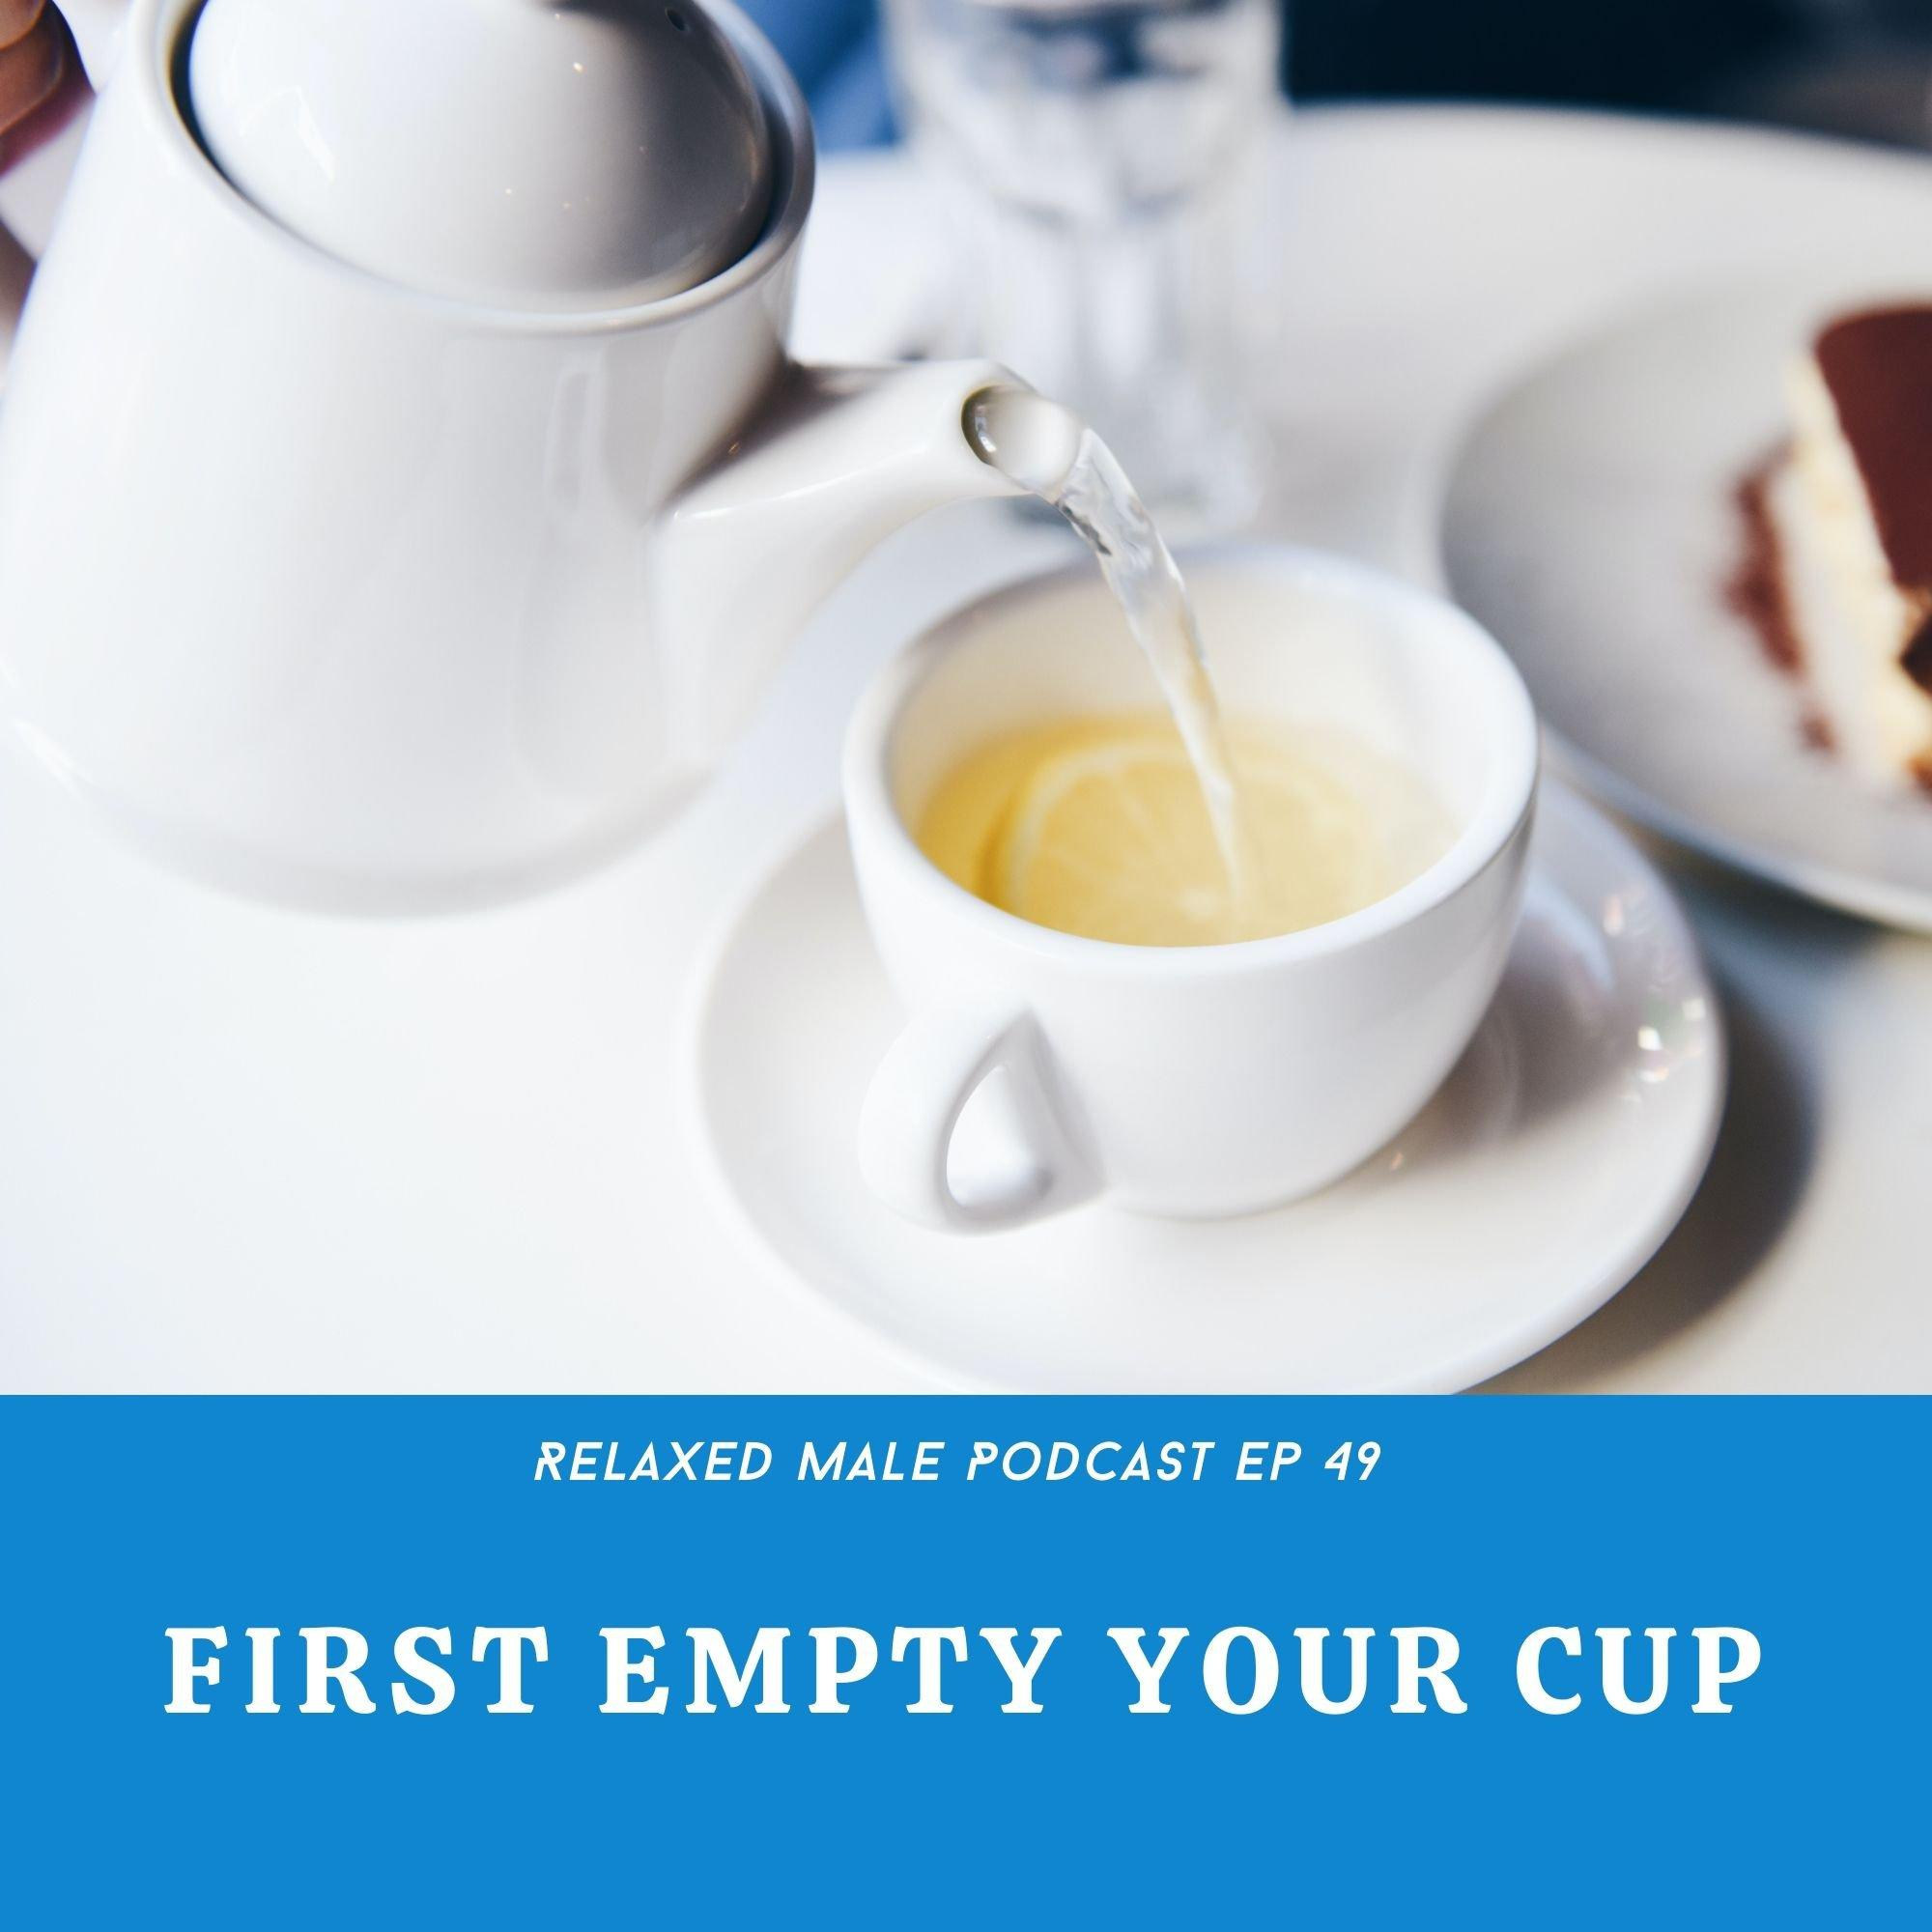 First Empty Your Cup